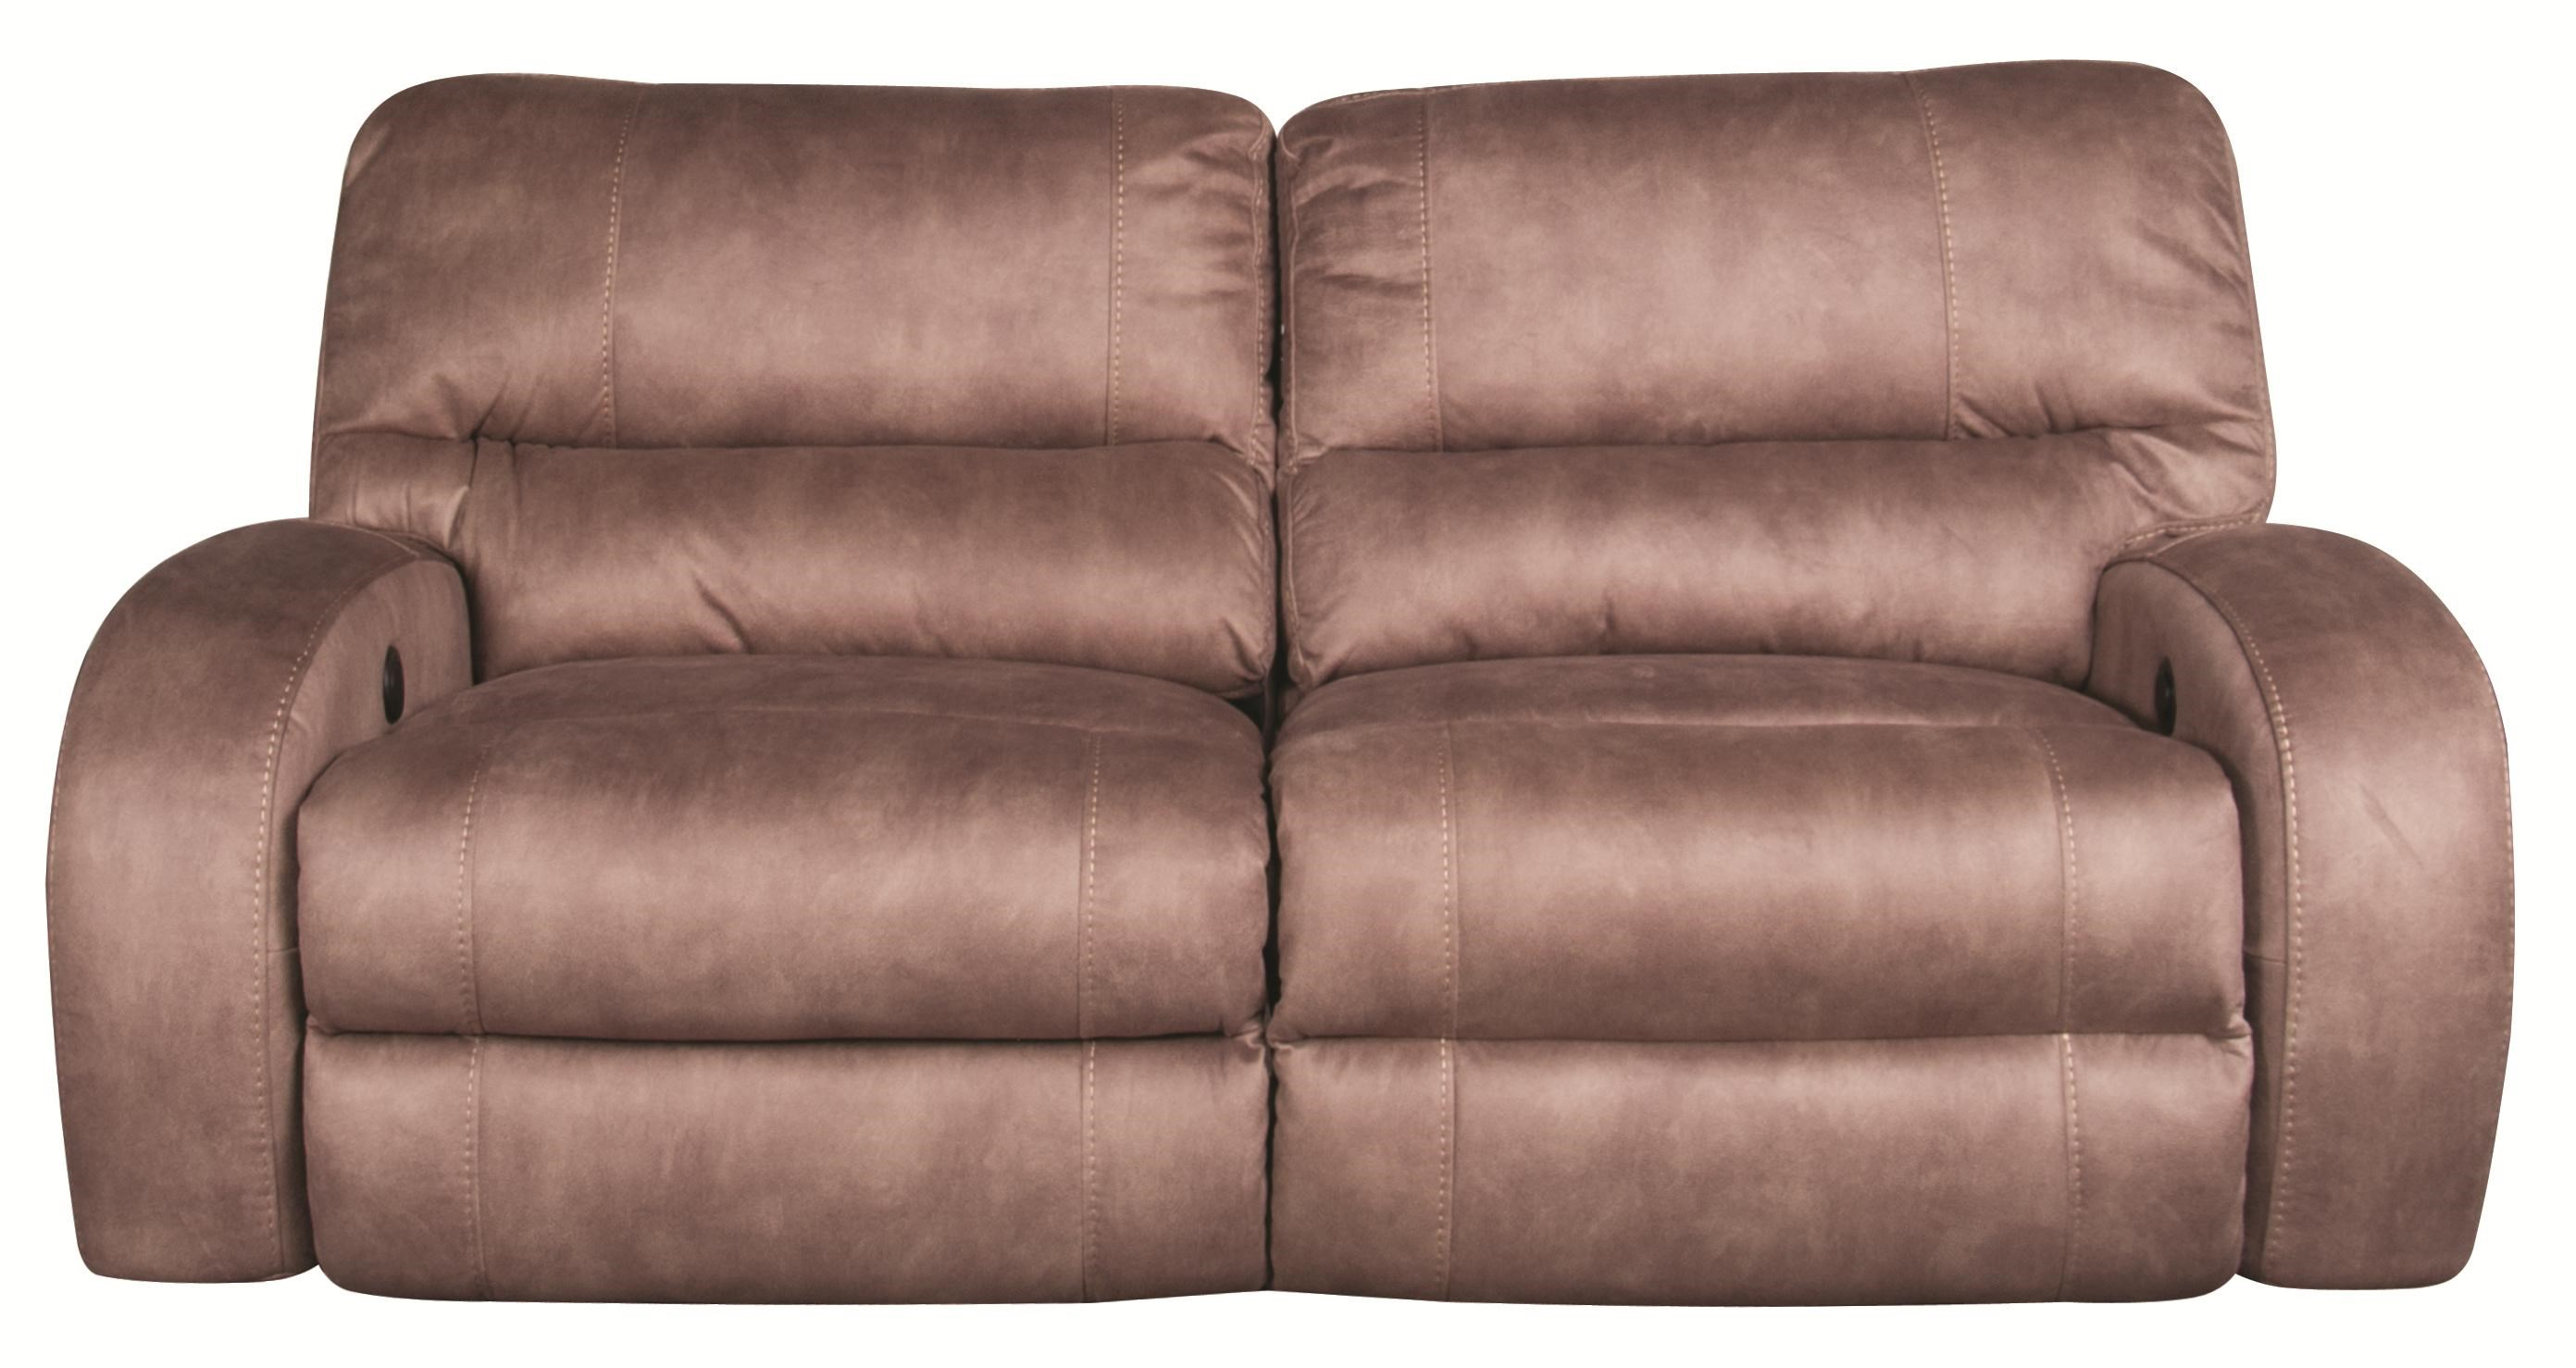 Morris Home CaidenCaiden Power Reclining Sofa ...